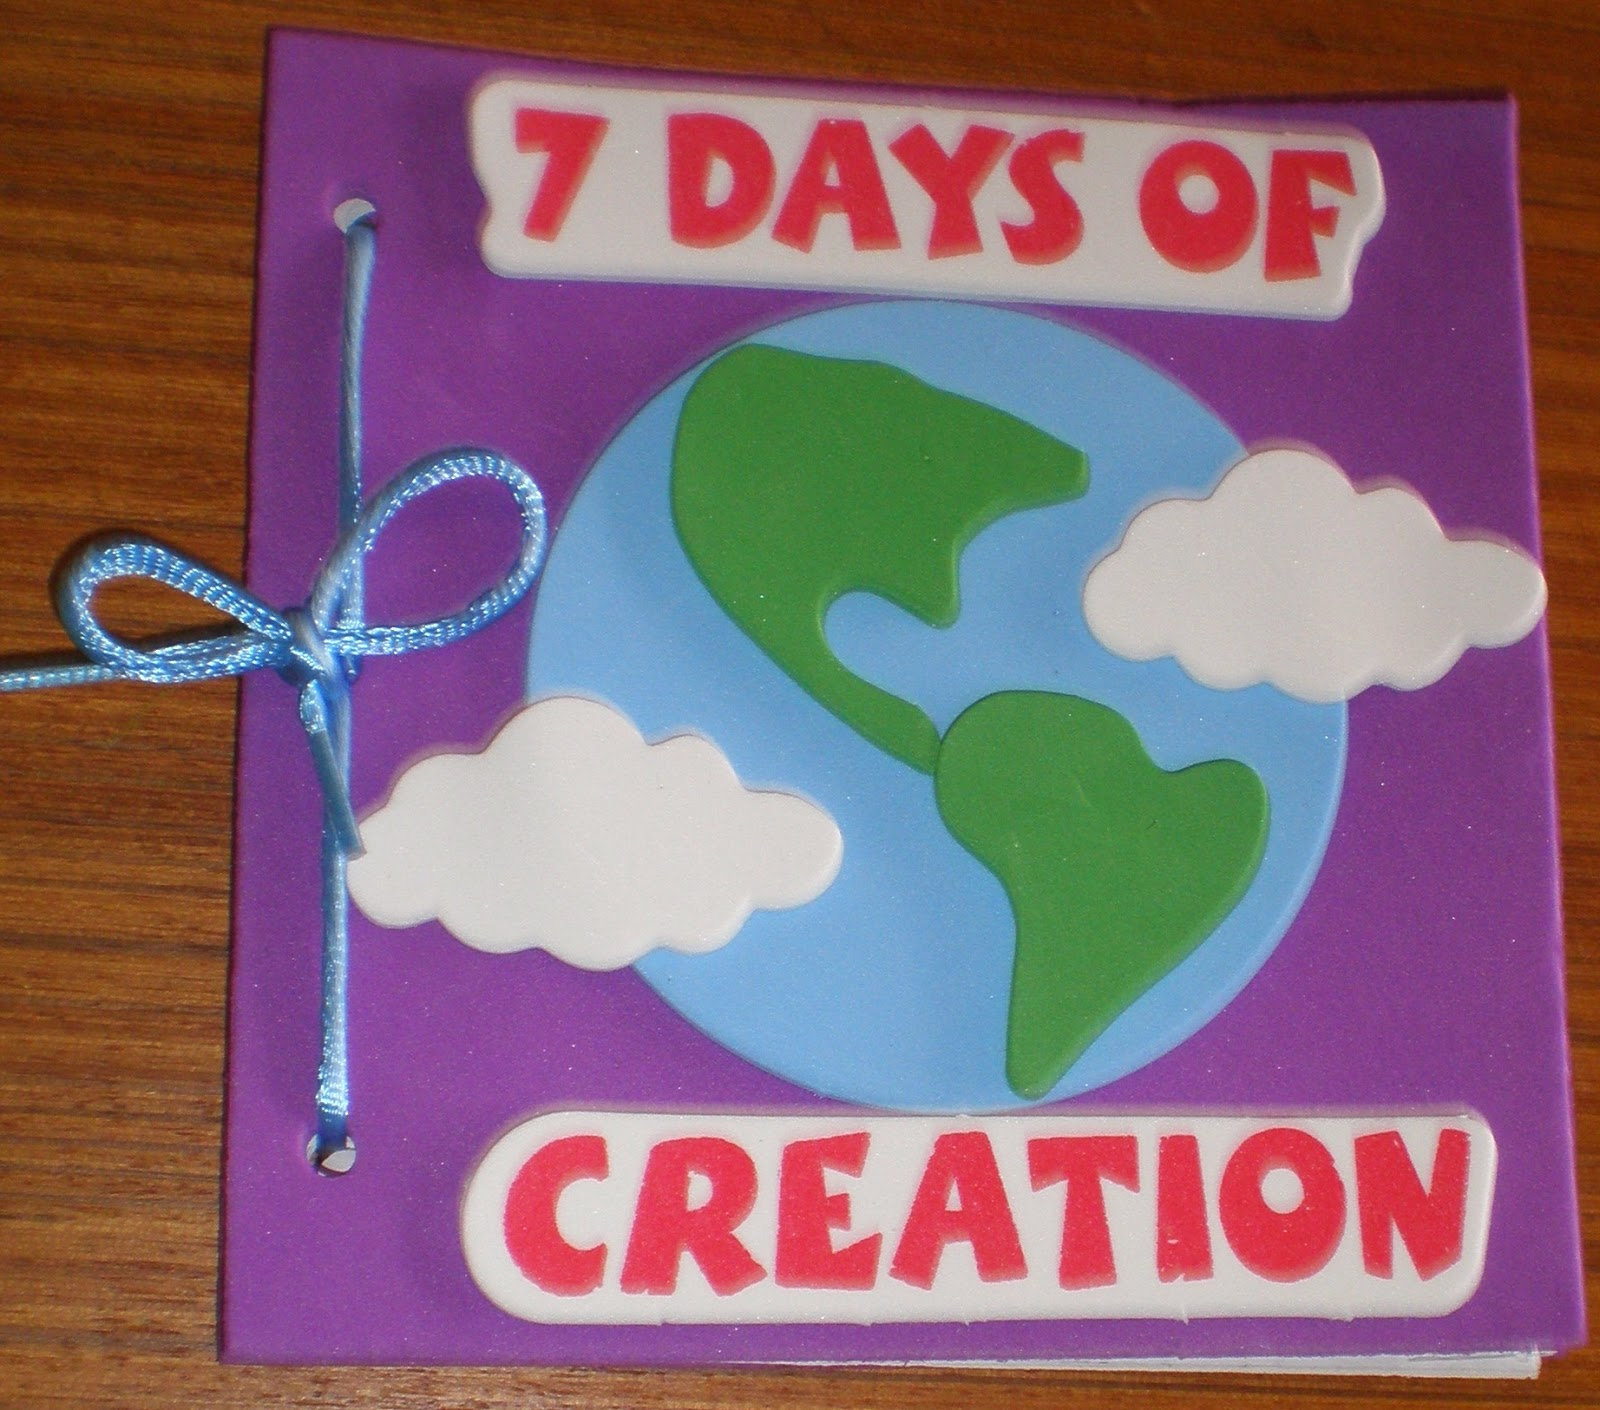 Petersham Bible Book Amp Tract Depot 7 Days Of Creation